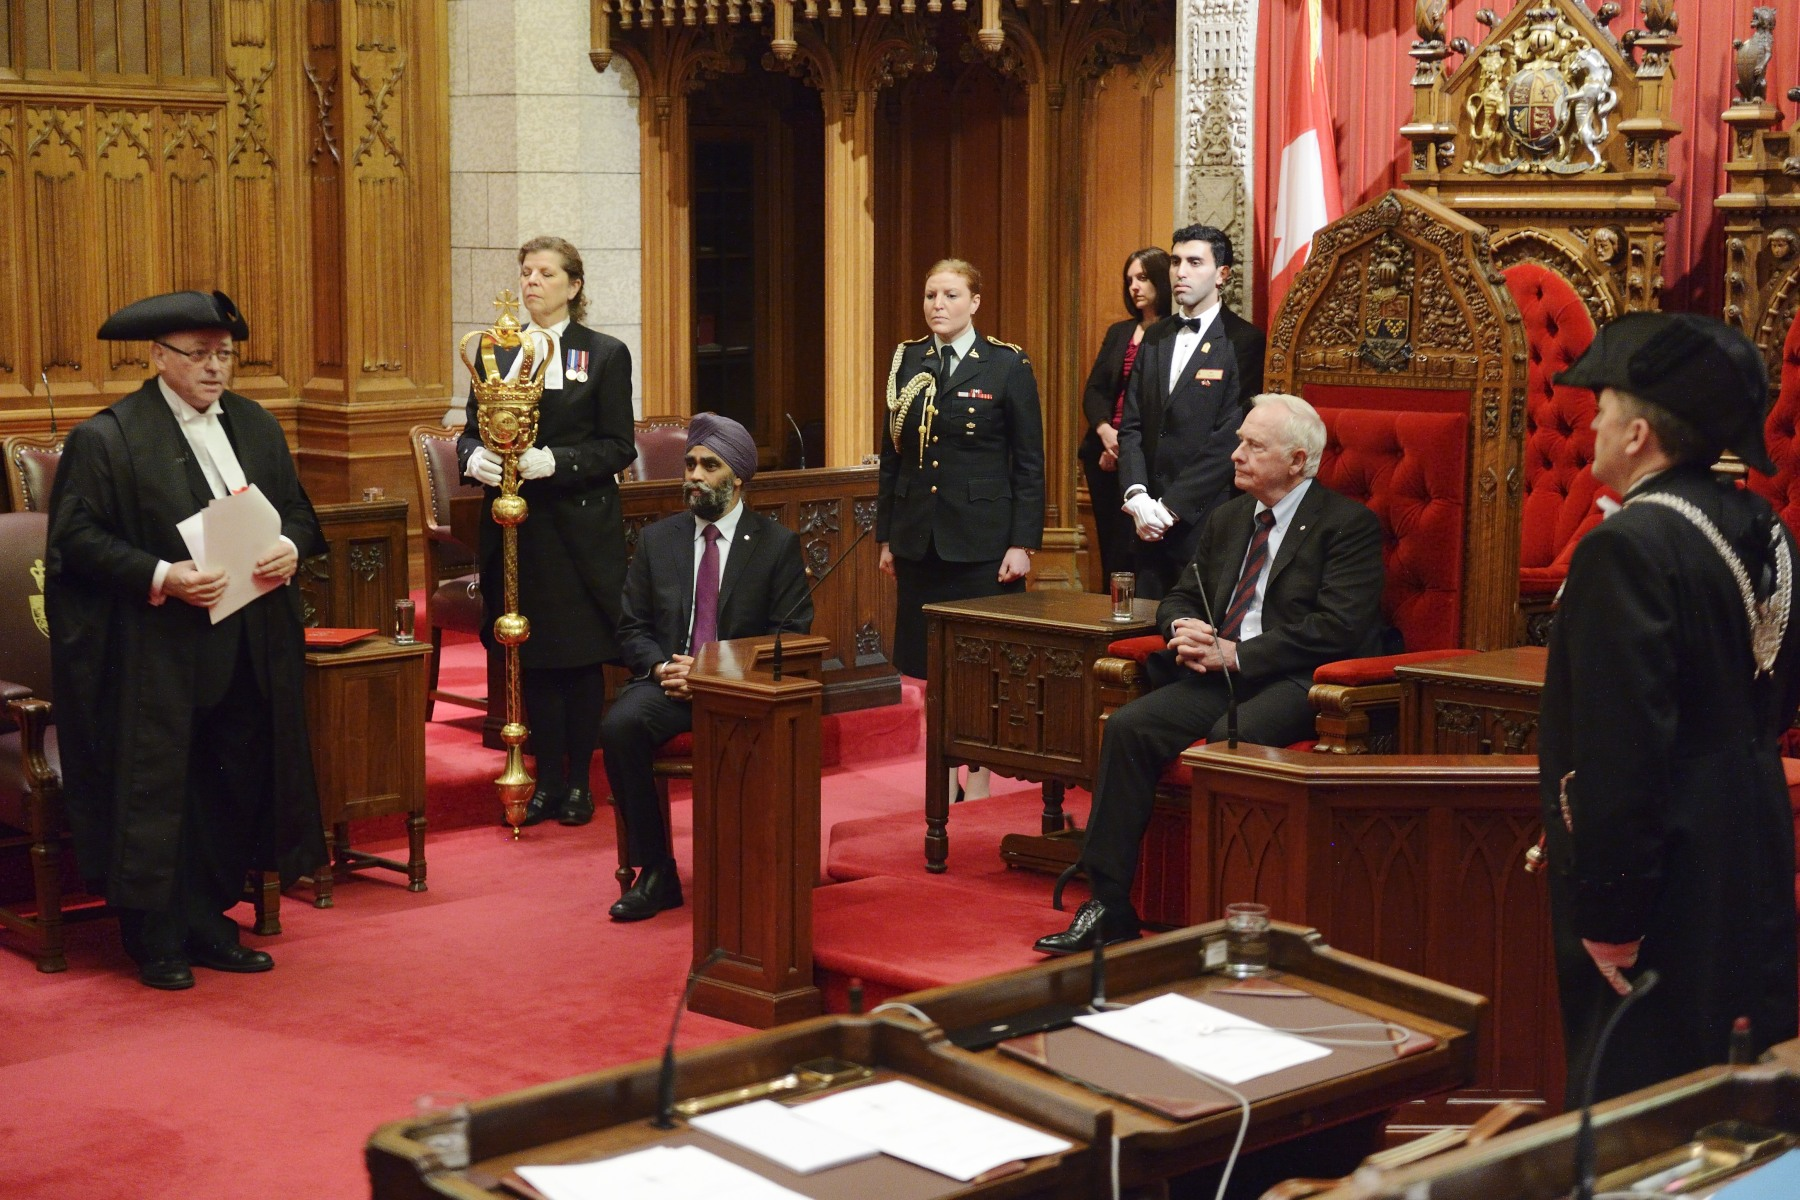 On December 11, 2015, His Excellency the Right Honourable David Johnston, Governor General of Canada, granted Royal Assent to the first bill adopted by the 42nd Parliament. The ceremony took place in the Senate Chamber.